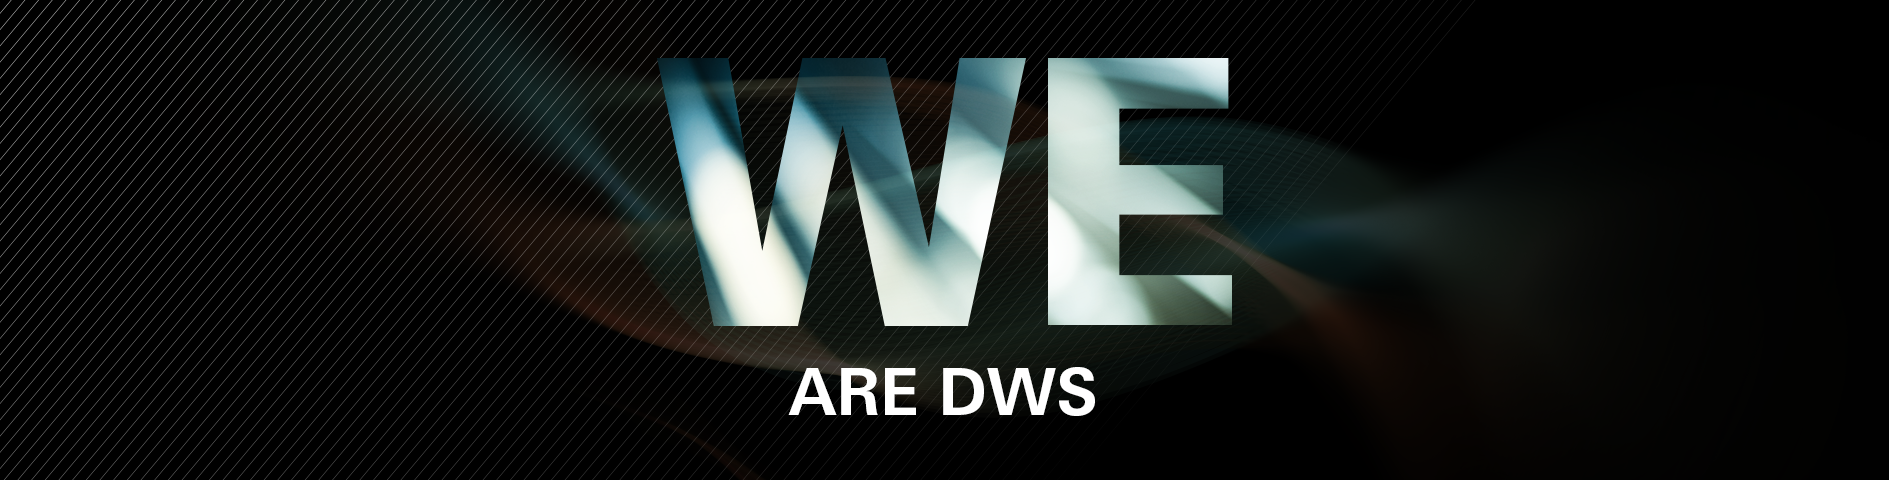 We are DWS_Web banner_1889x480.png